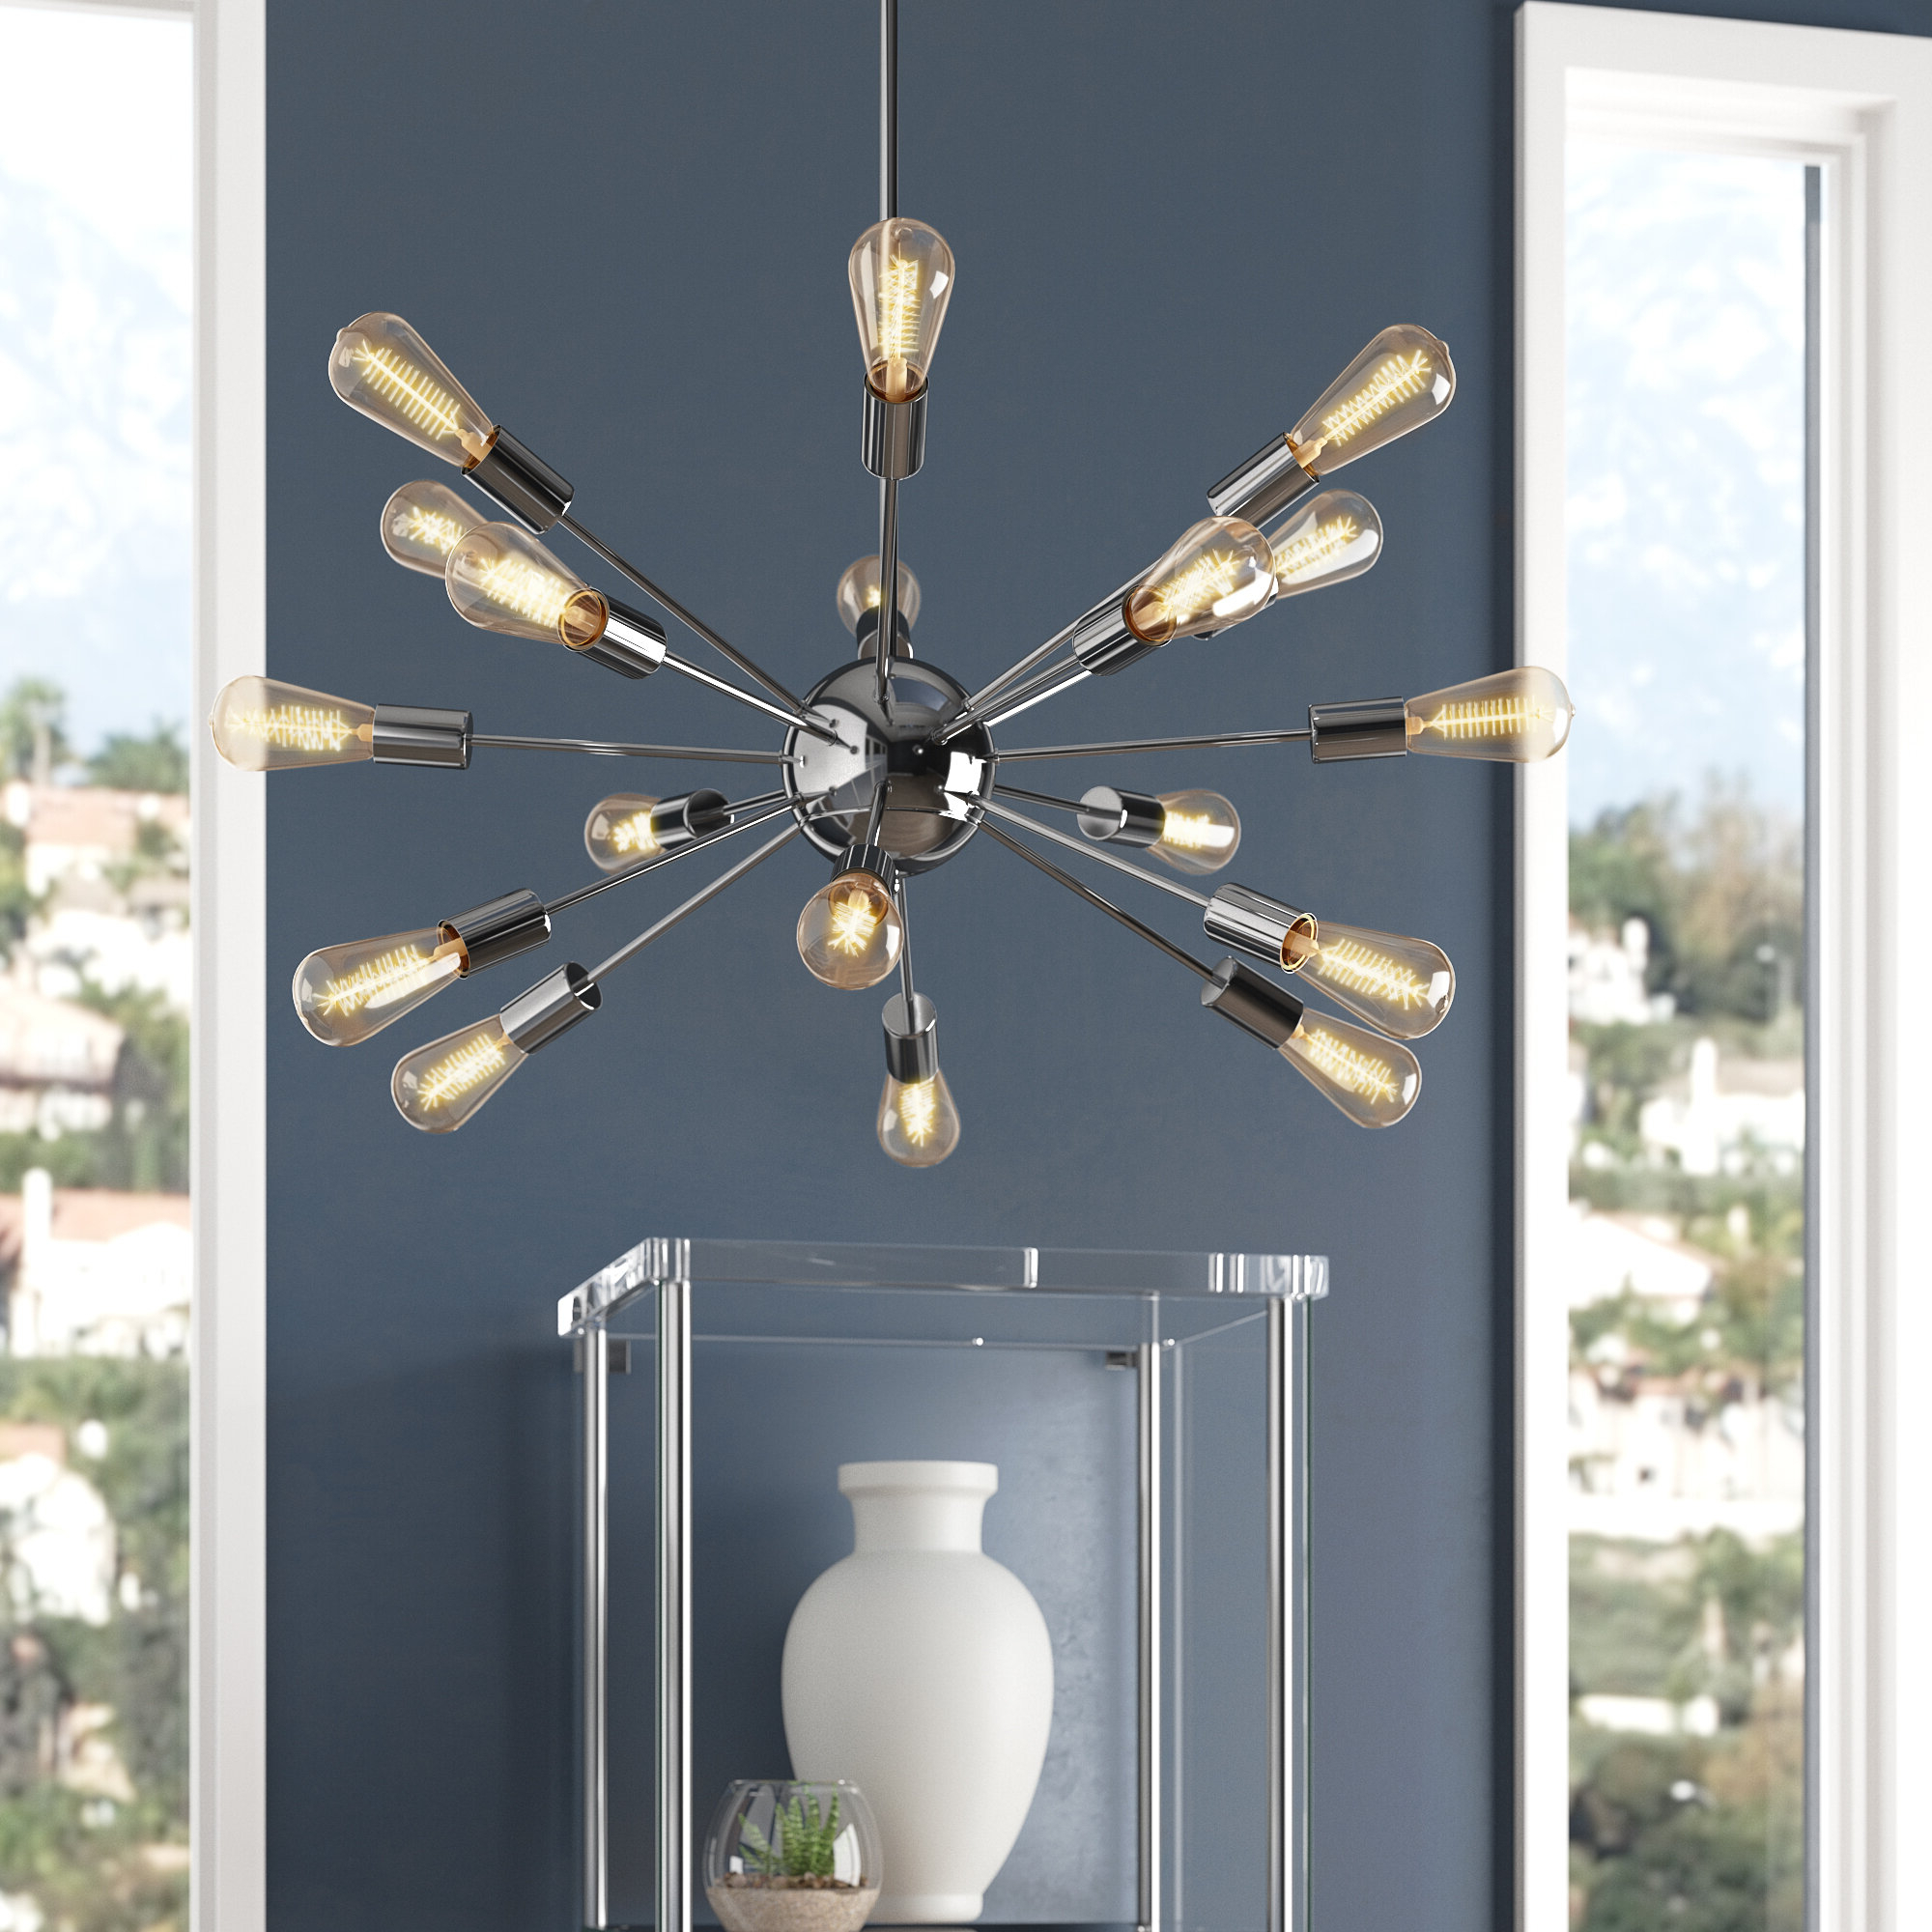 Corona 12 Light Sputnik Chandeliers Intended For Well Known Cordell 18 Light Sputnik Chandelier (View 18 of 25)